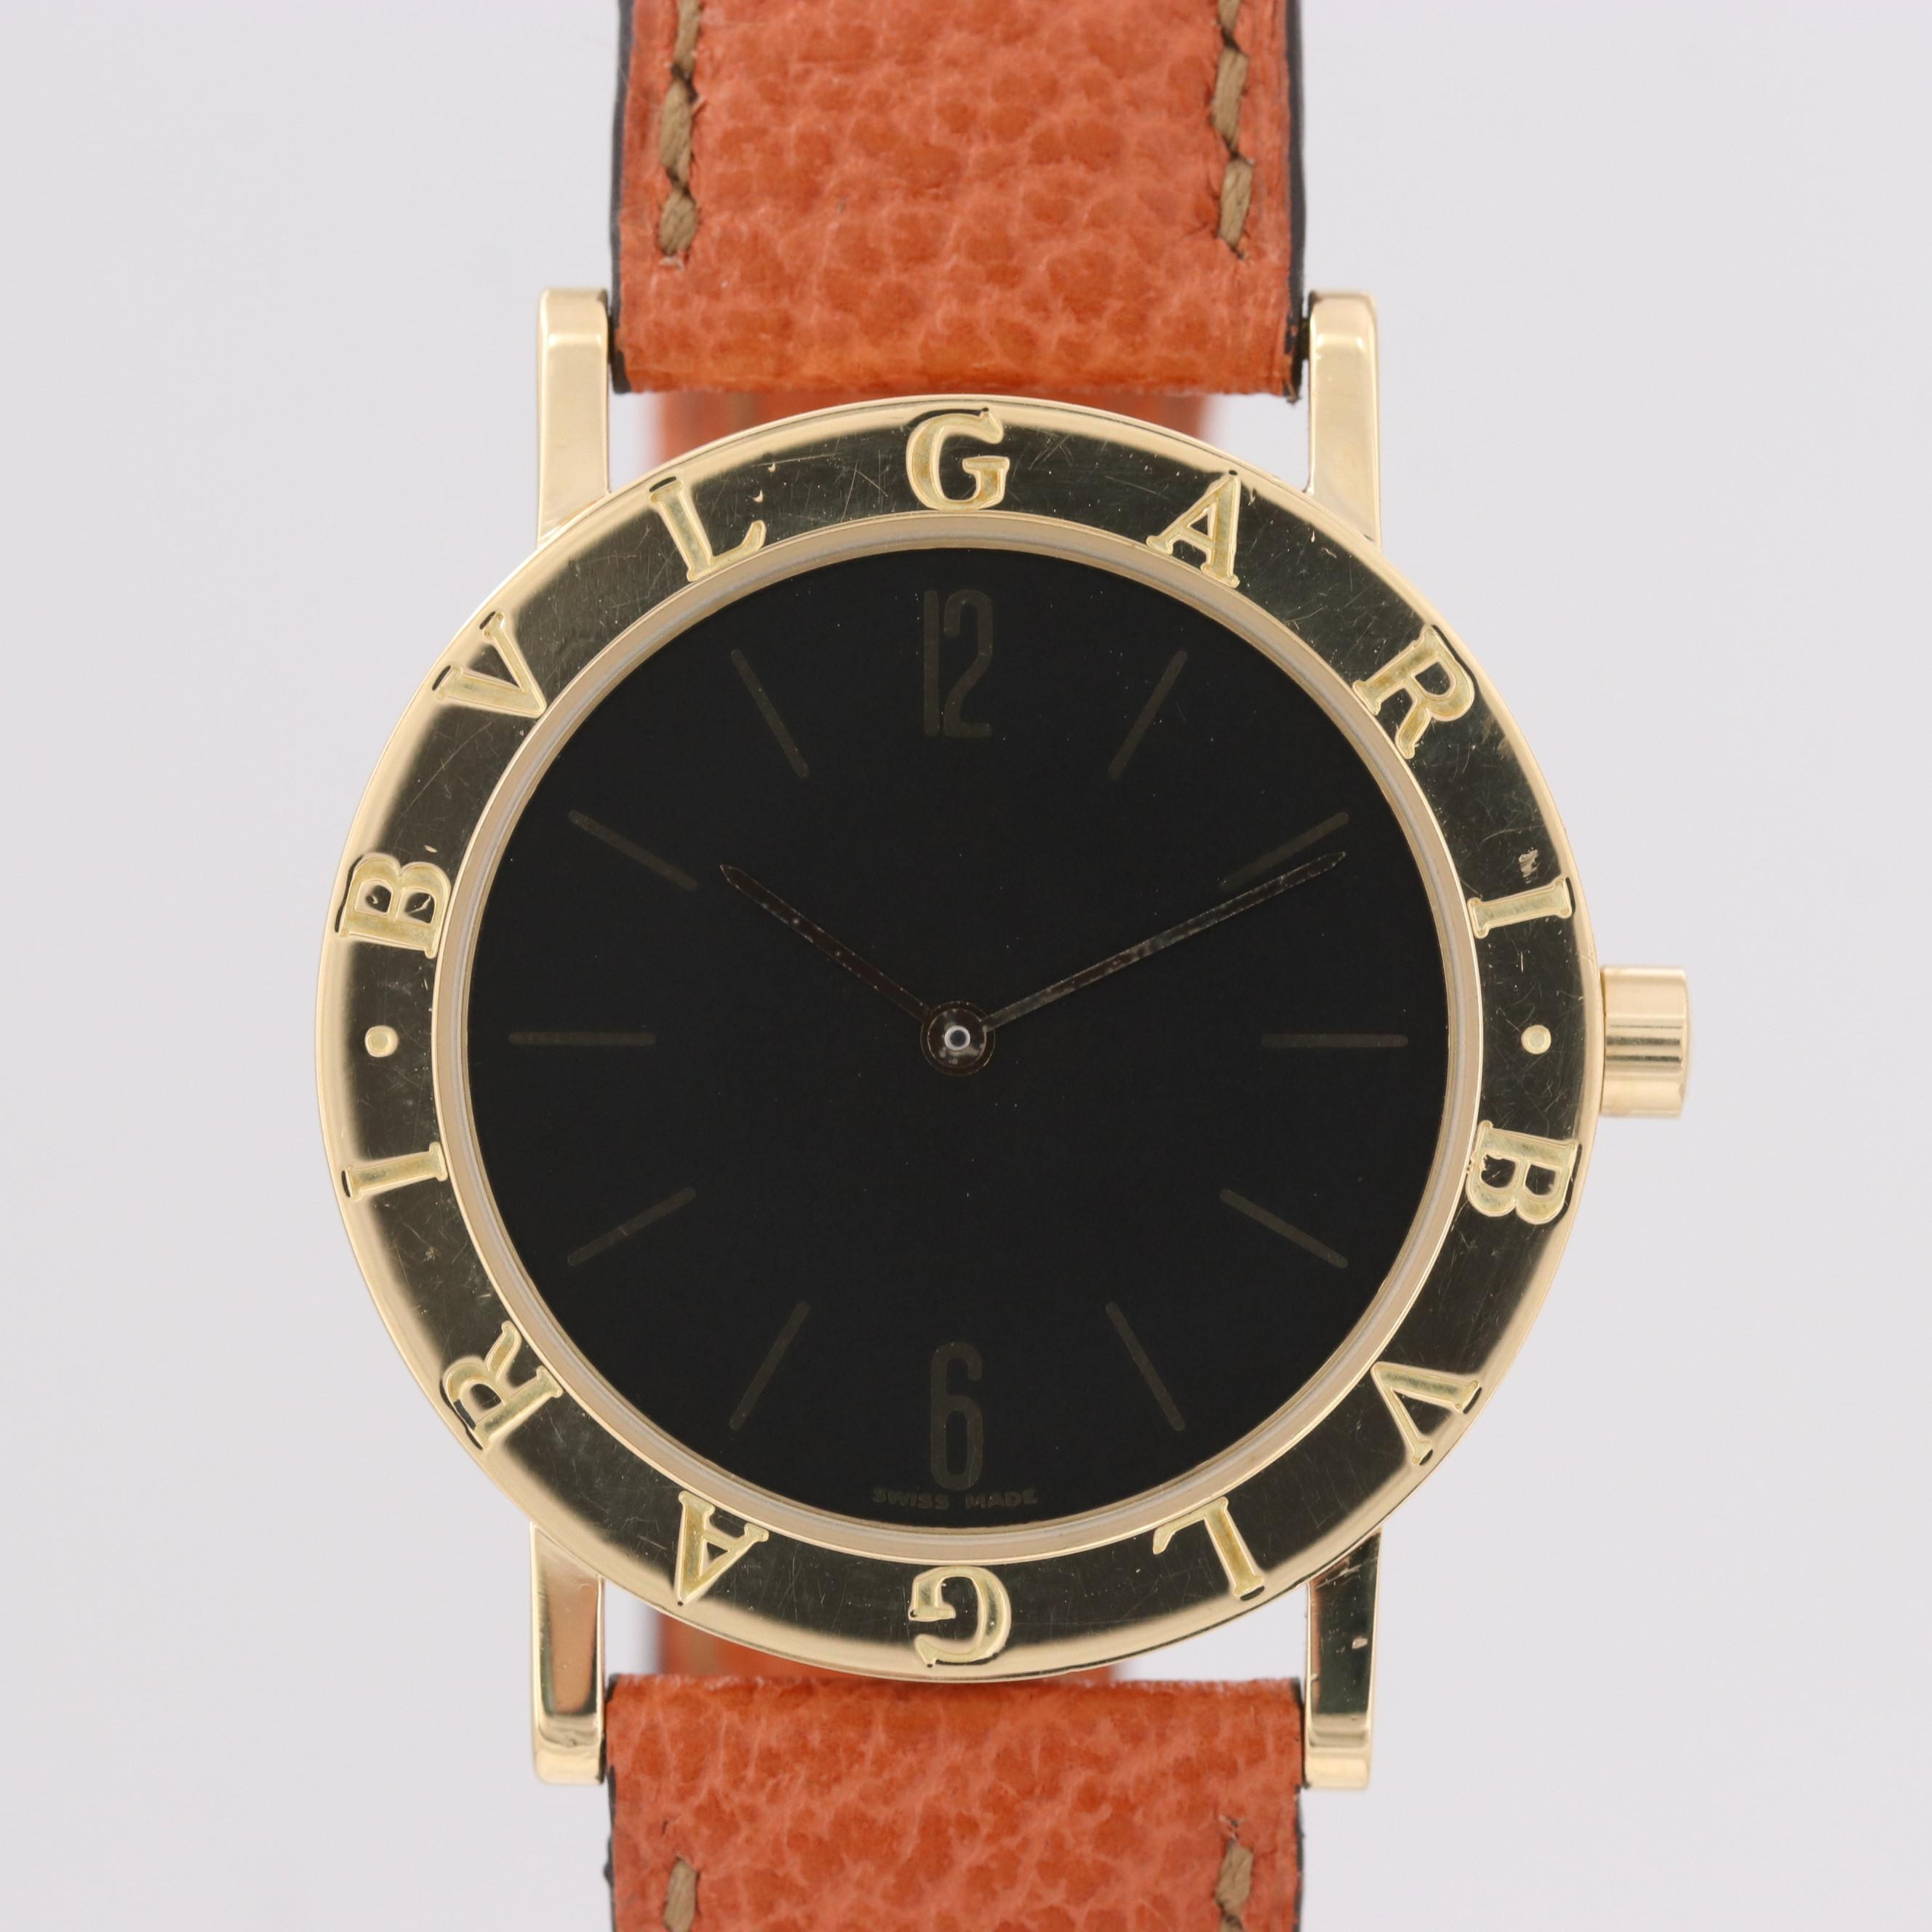 Bulgari Bulgari 18K Yellow Gold Quartz Wristwatch